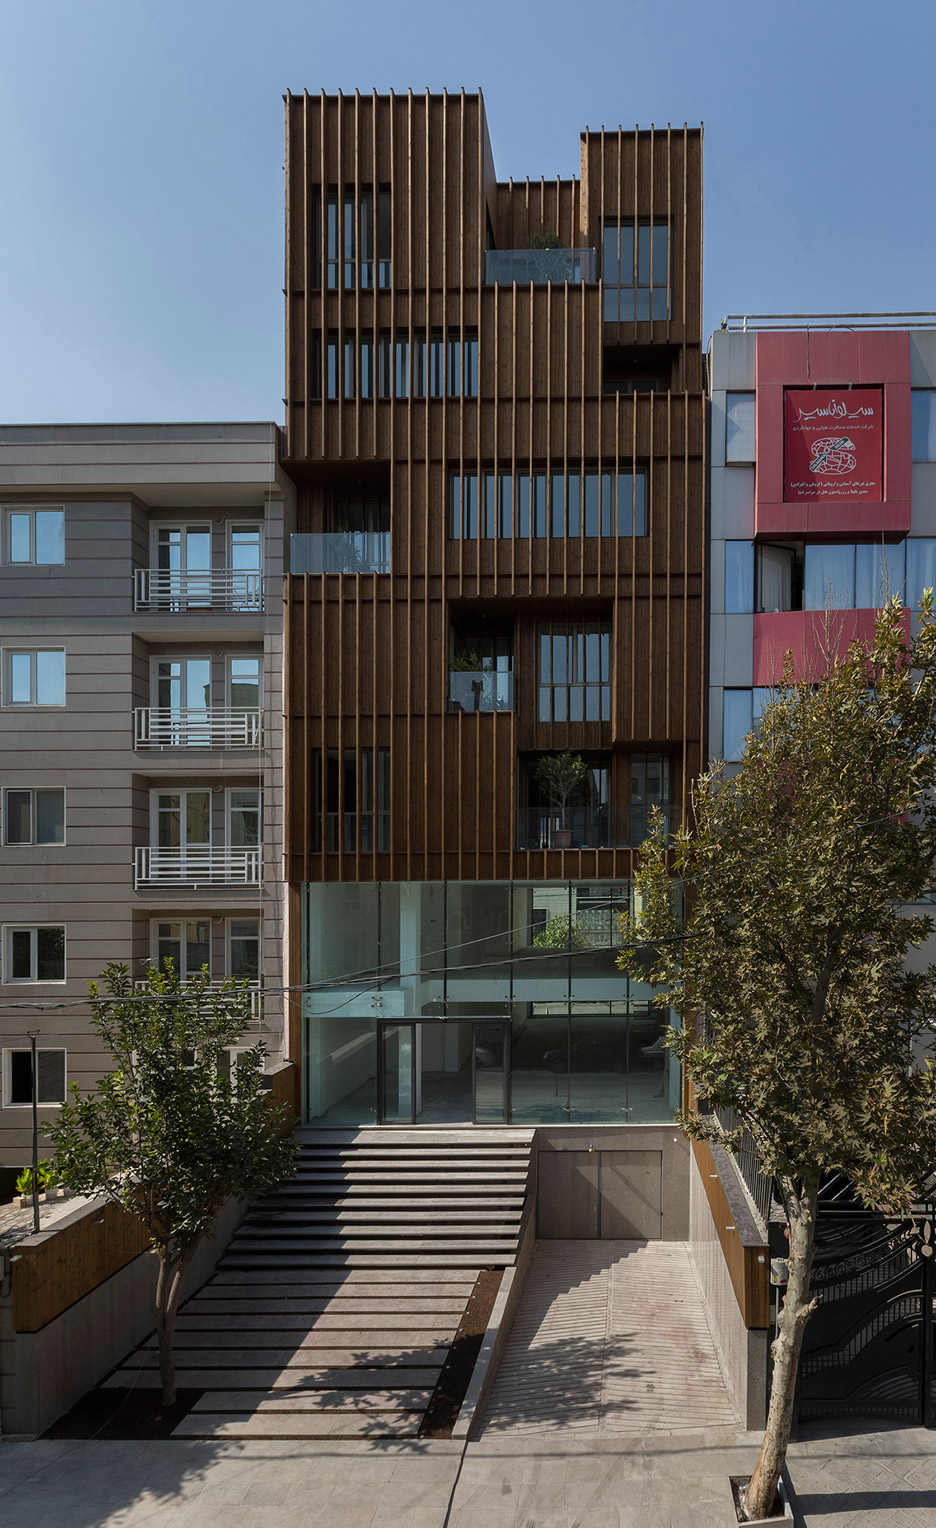 office-block-tehran-lp2-architecture-studio-iran-commercial-facade-connection-relationship-interior-exterior-wood_dezeen_936_3